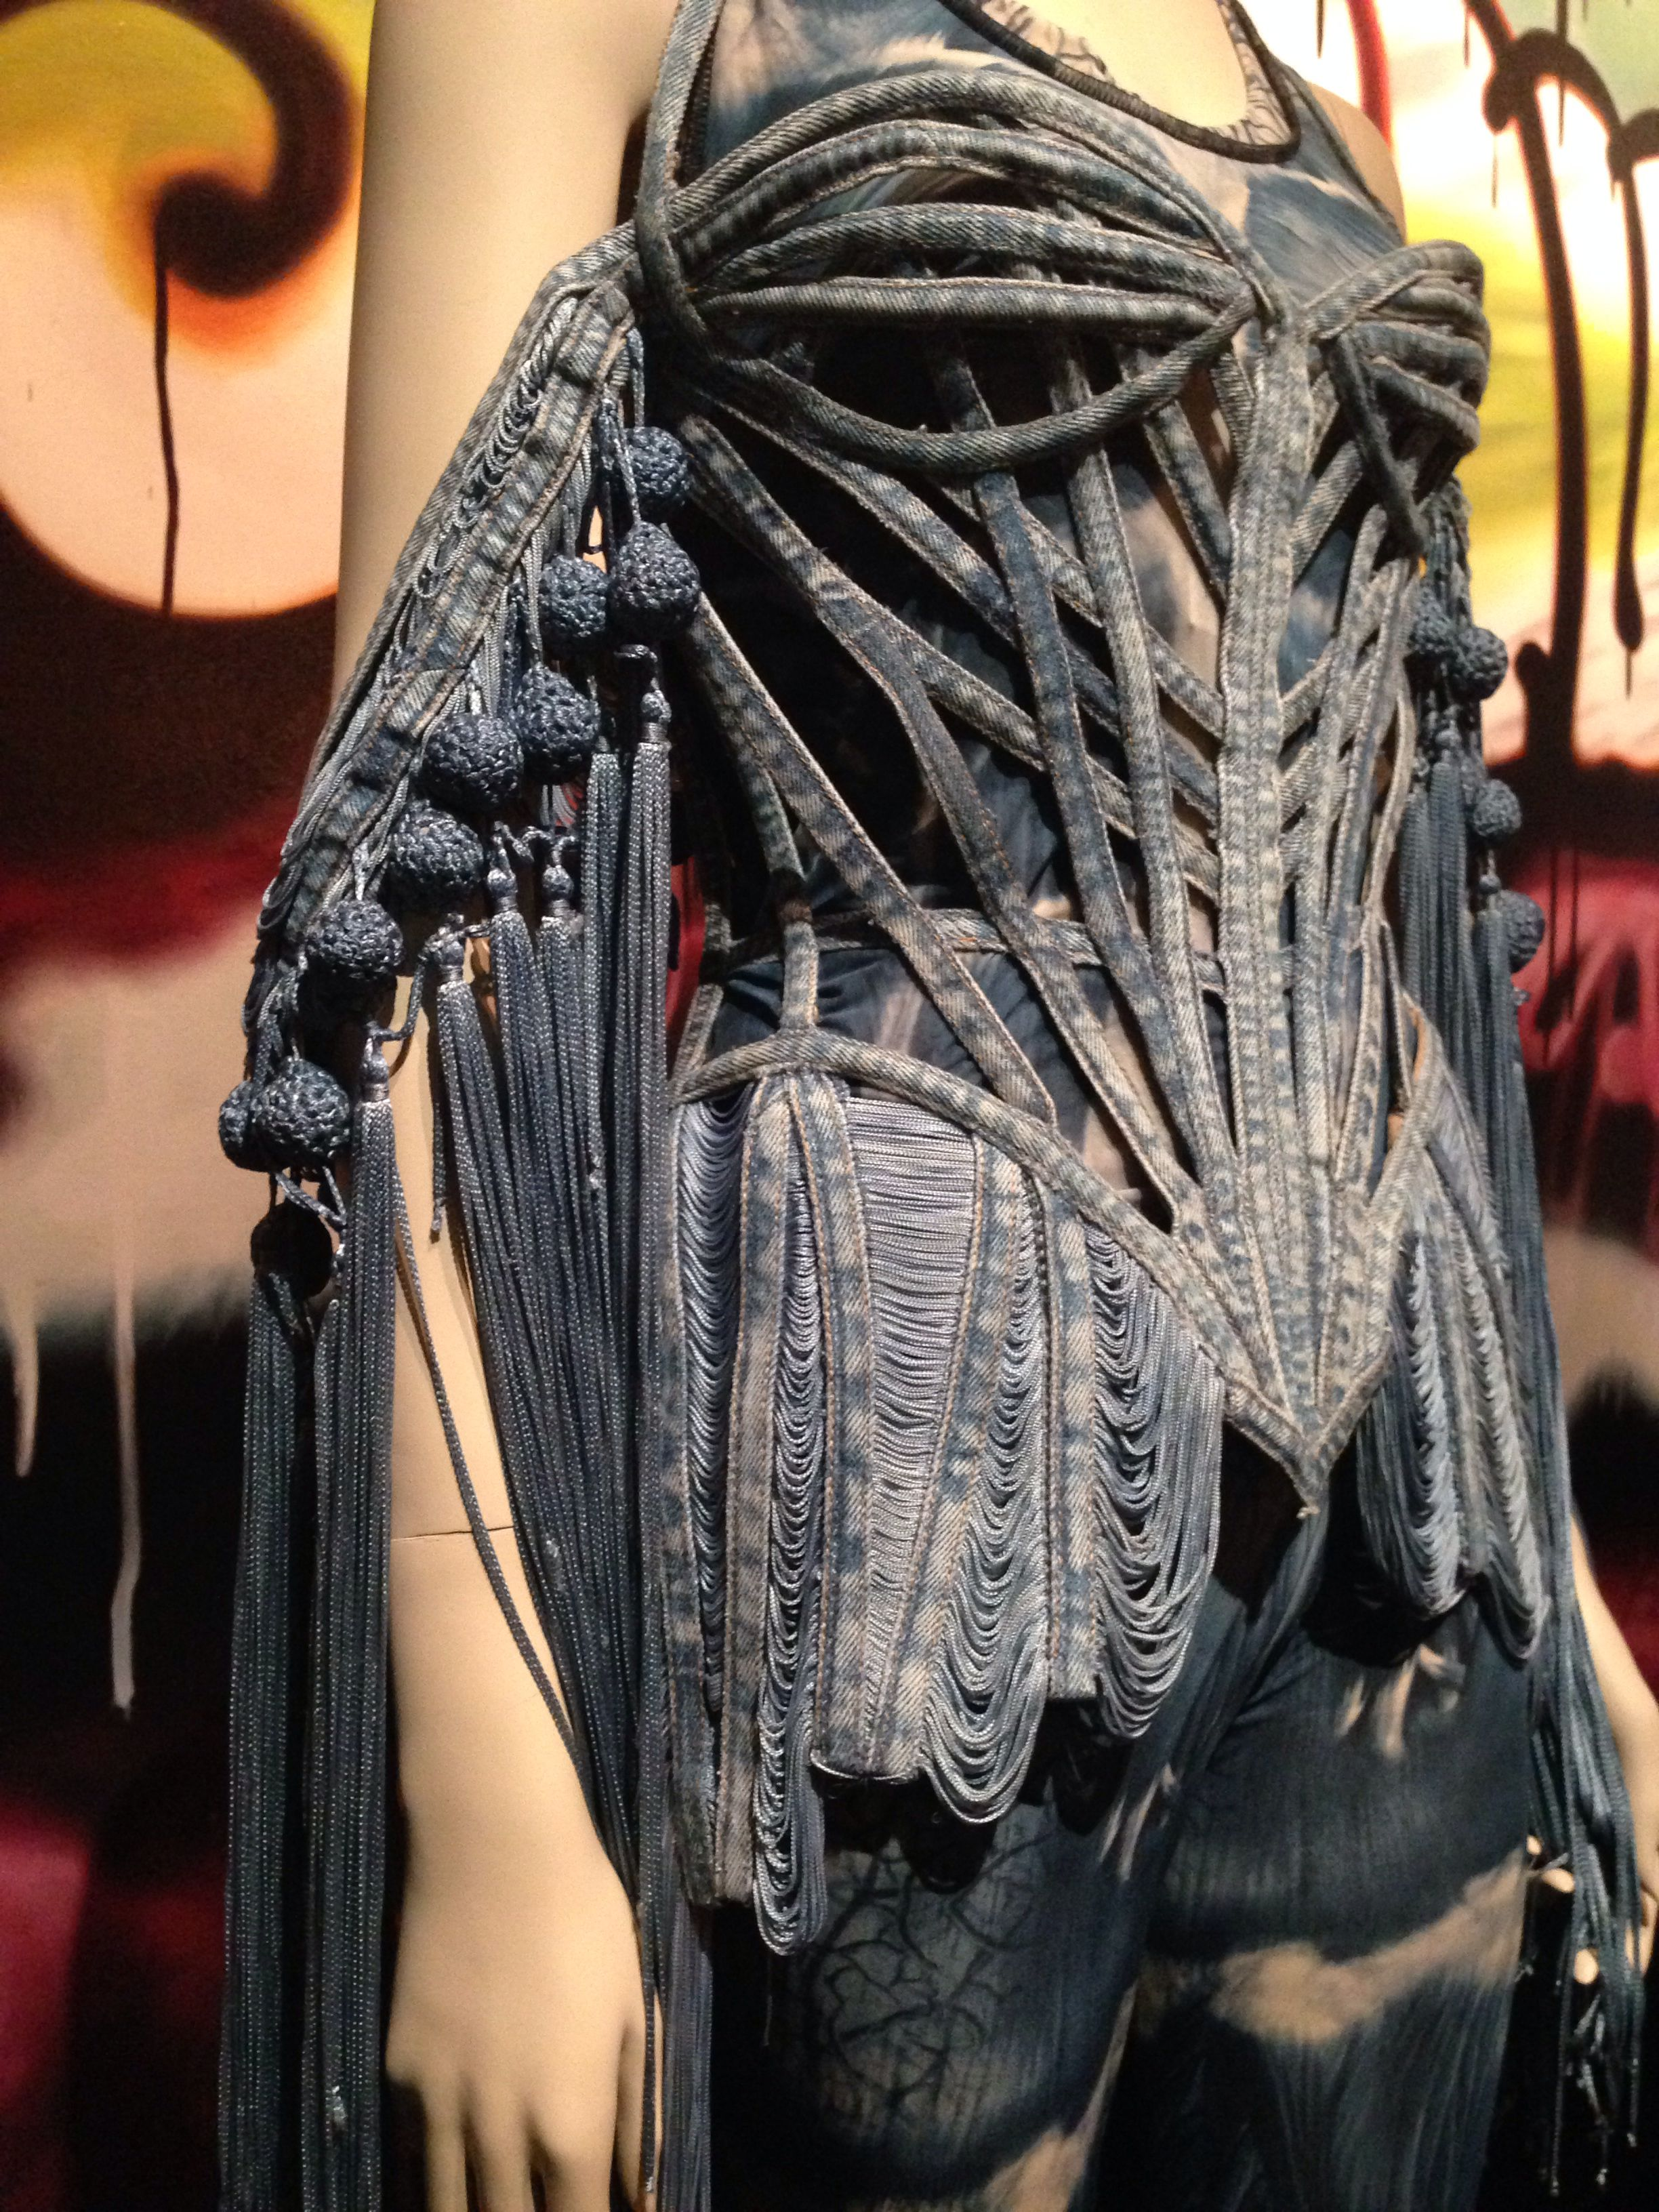 jean paul gaultier denim ensemble brooklyn museum. Black Bedroom Furniture Sets. Home Design Ideas